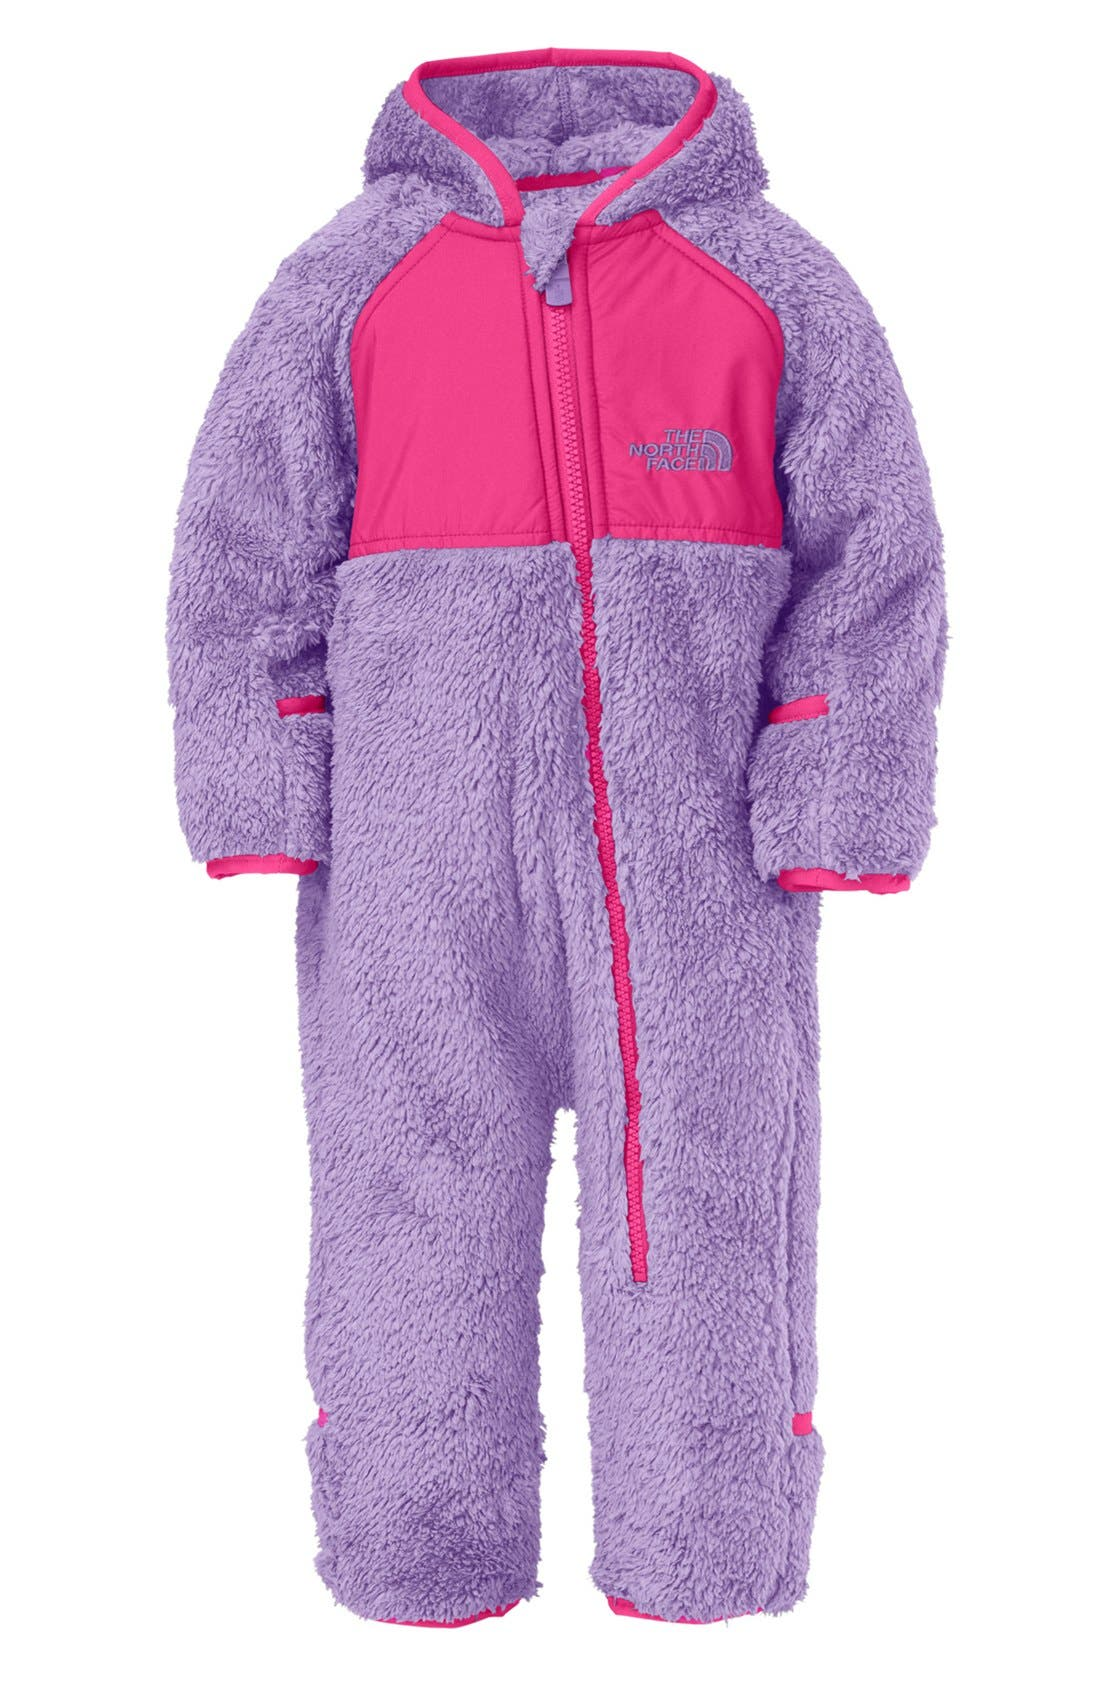 Alternate Image 1 Selected - The North Face 'Plushee' Fleece Bunting (Baby Girls)